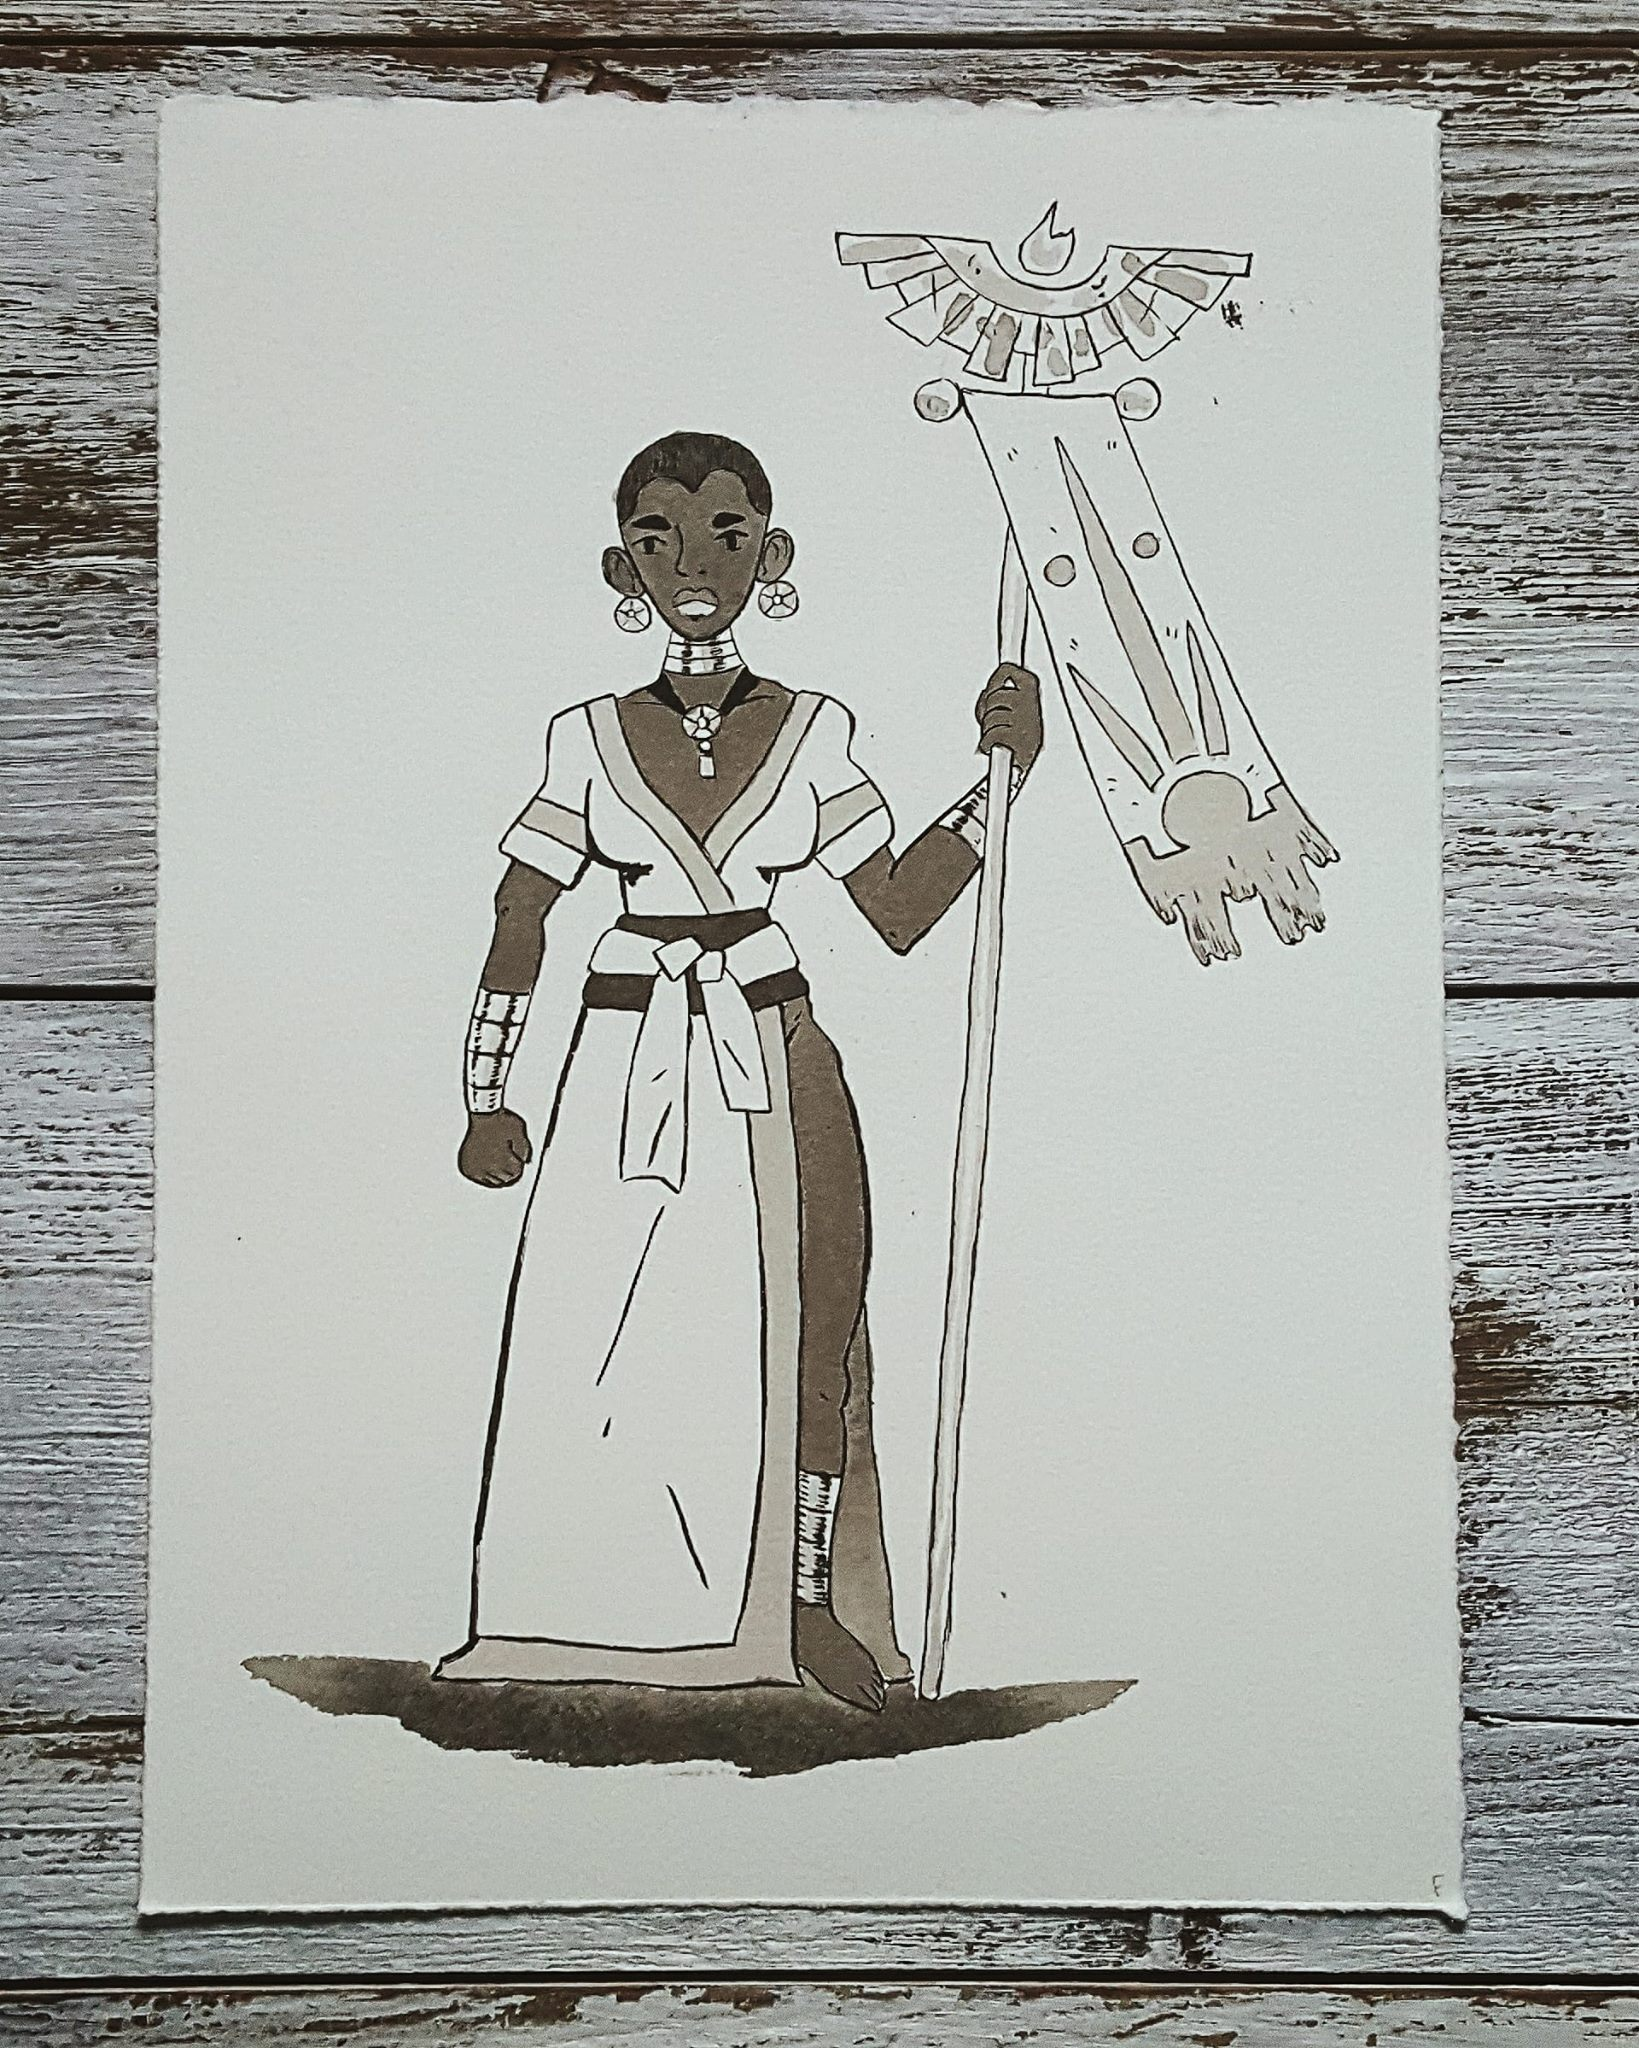 A Knight a Day No. 29, Sun Priestess - One of the most powerful magicians in the world. She cares after the monuments that her Gods spirits dwells in. She can destroy or give life with the powerful sun fire that spits from her staff.